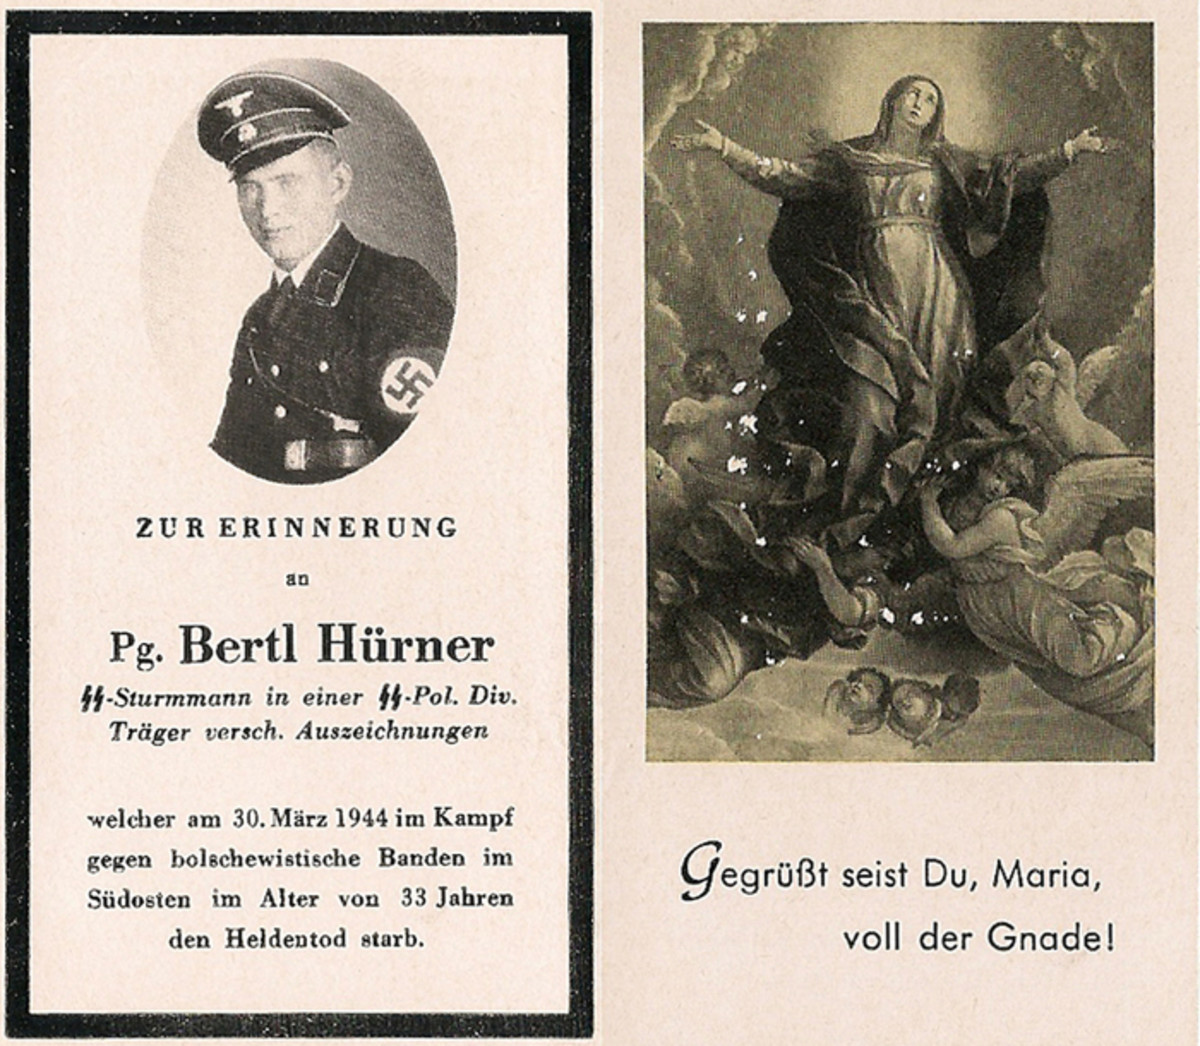 Though an SS man, Bertl Hürner's 1944-dated funeral card  had the Catholic image of the Virgin Mary on the reverse.